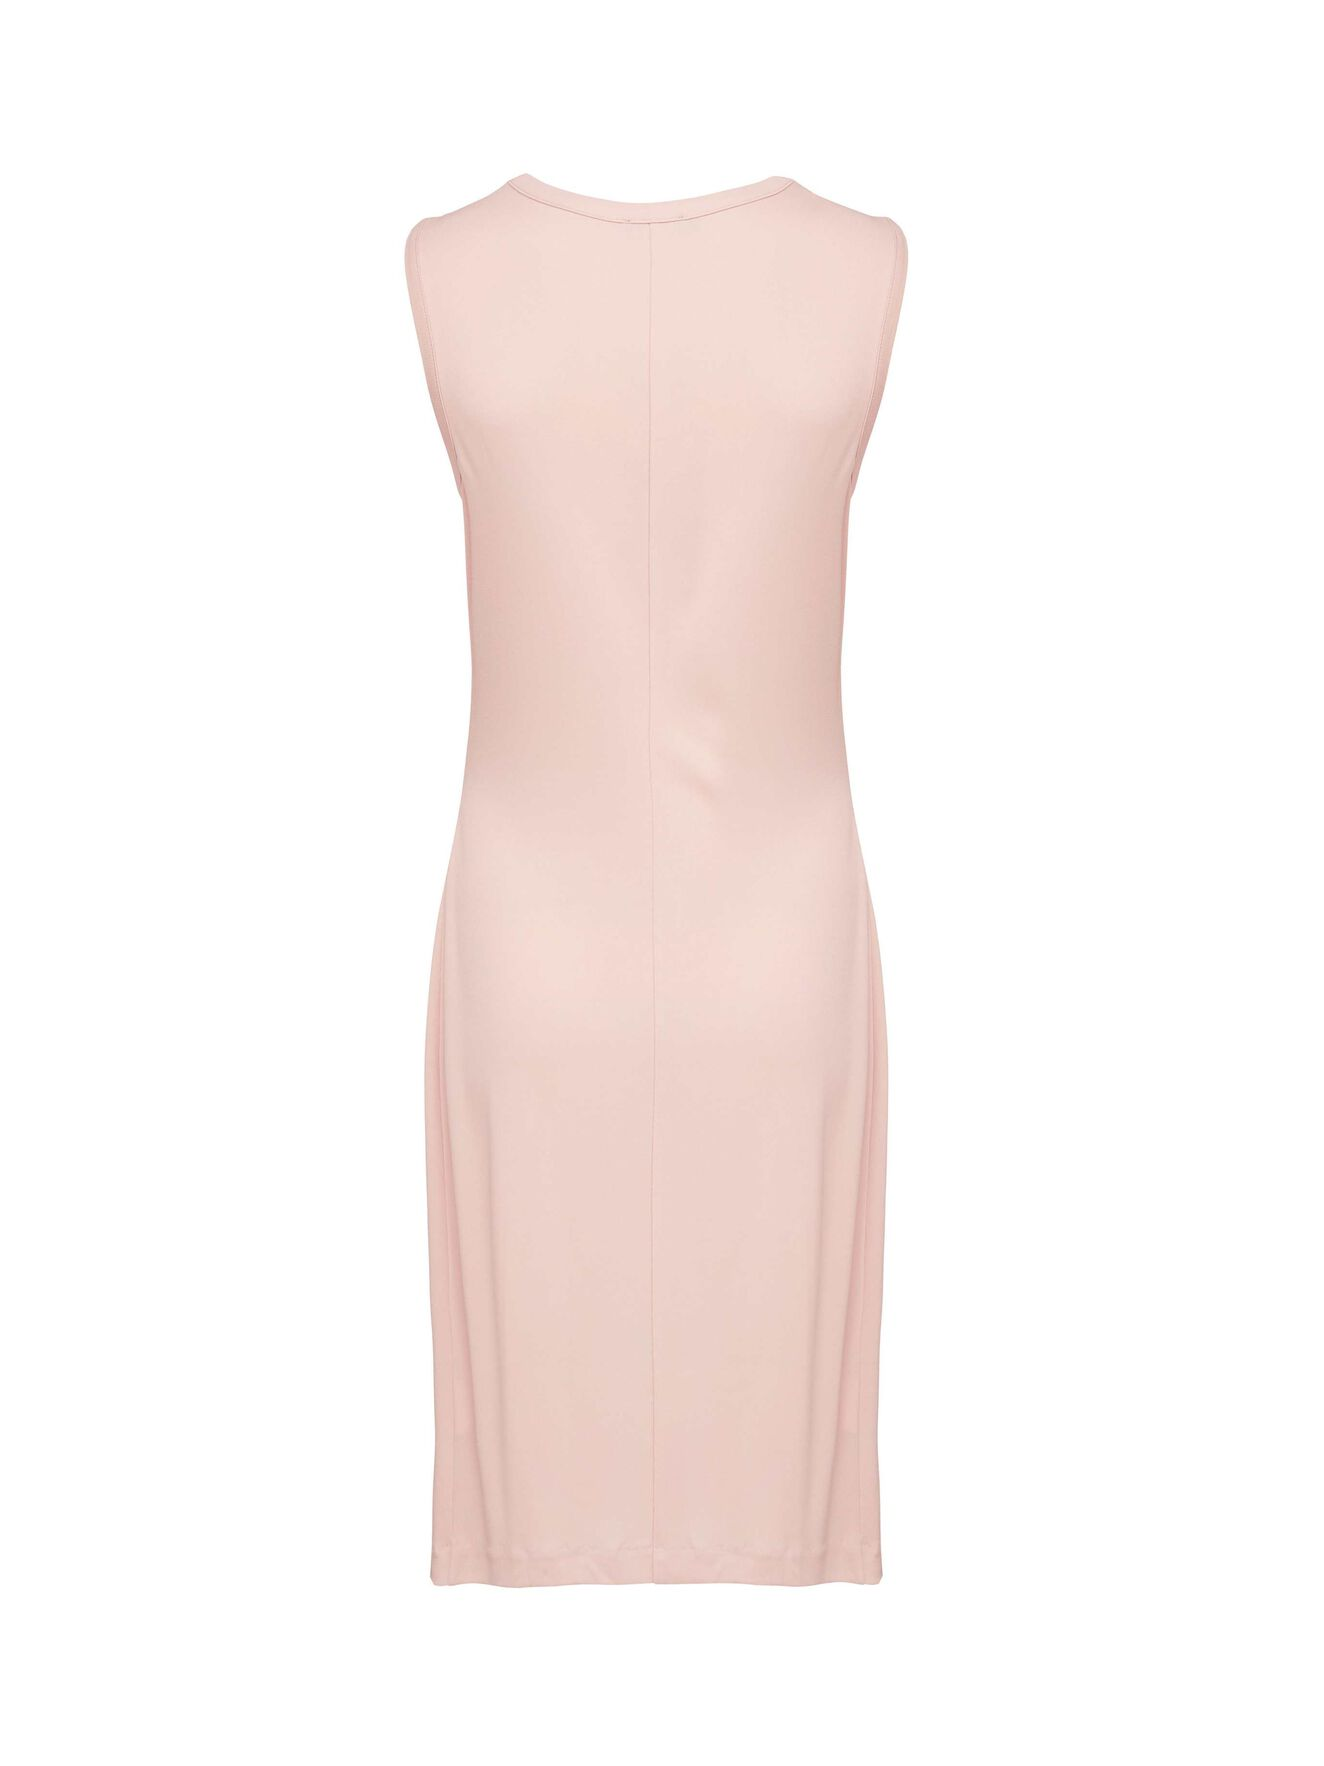 Kimia dress in Mahogany Rose from Tiger of Sweden